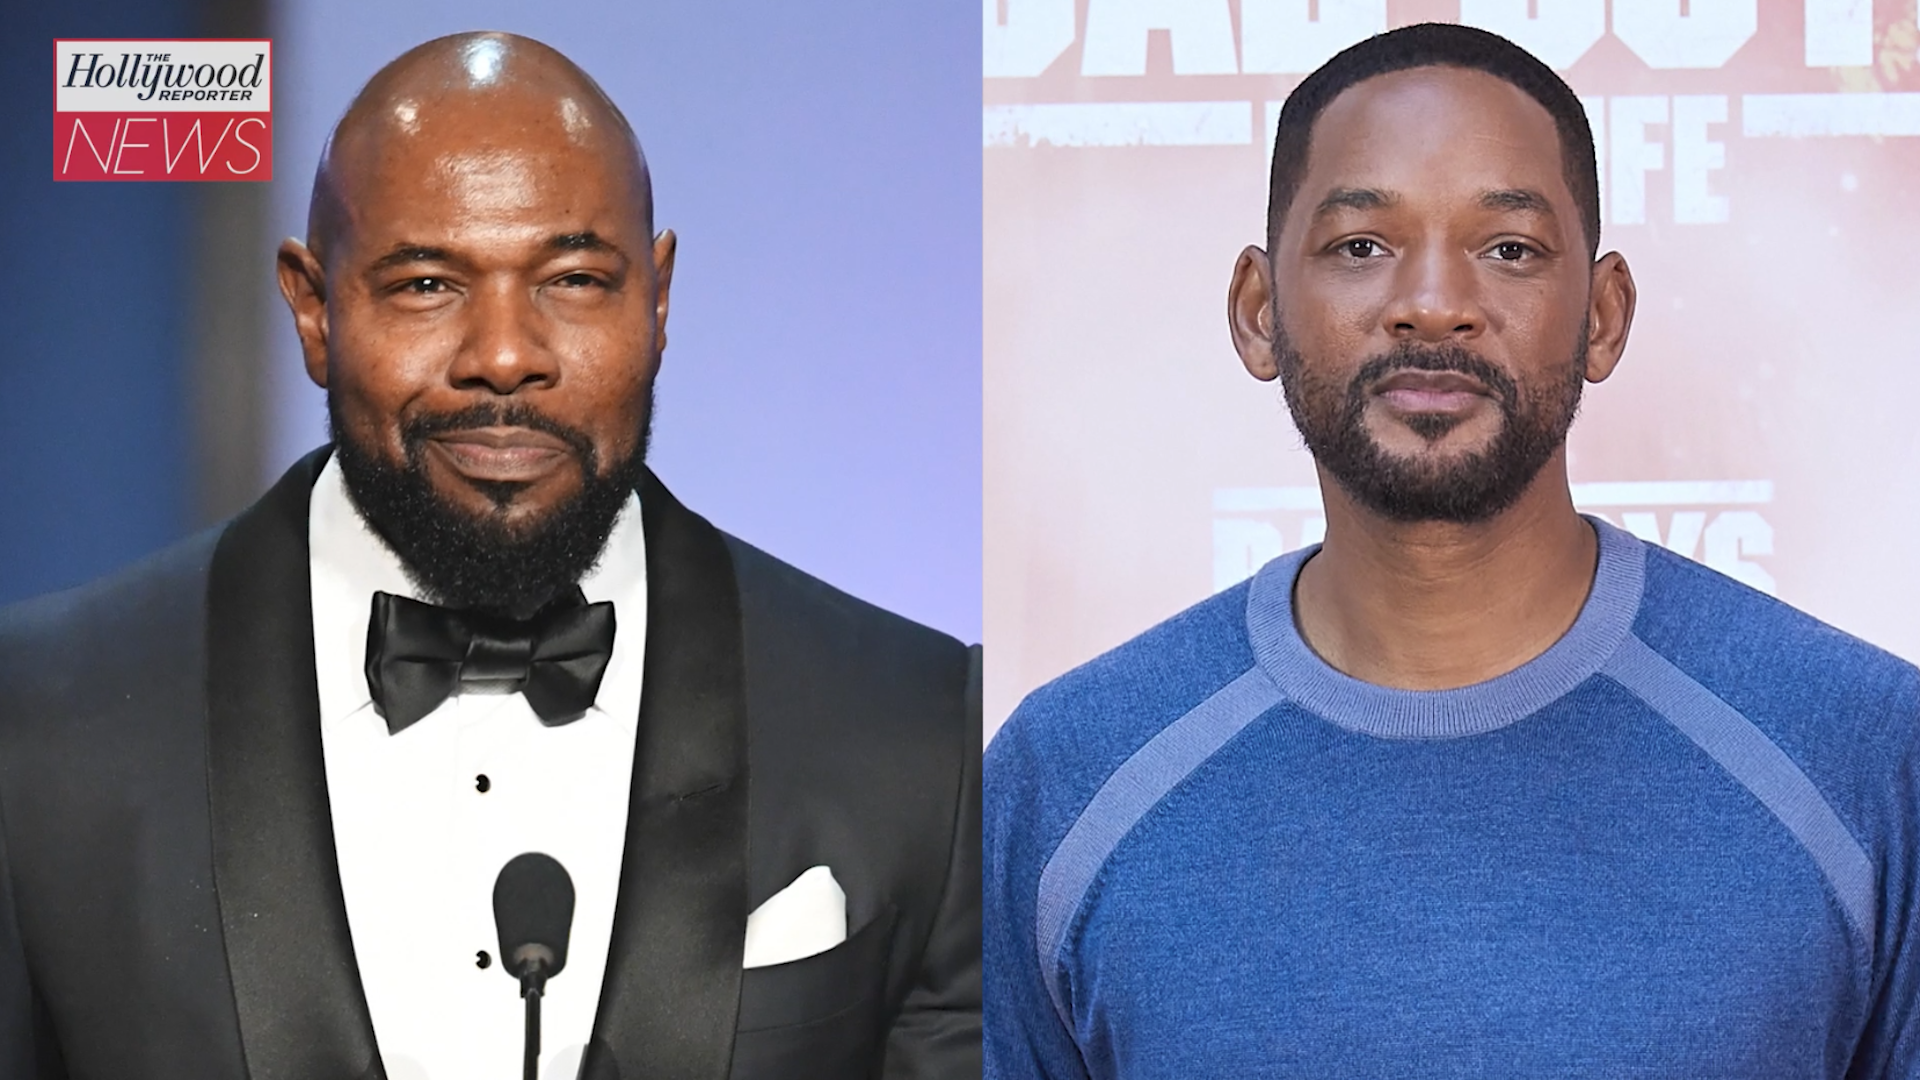 Will Smith, Antoine Fuqua Pull 'Emancipation' Production Out of Georgia Over Voting Law | THR News